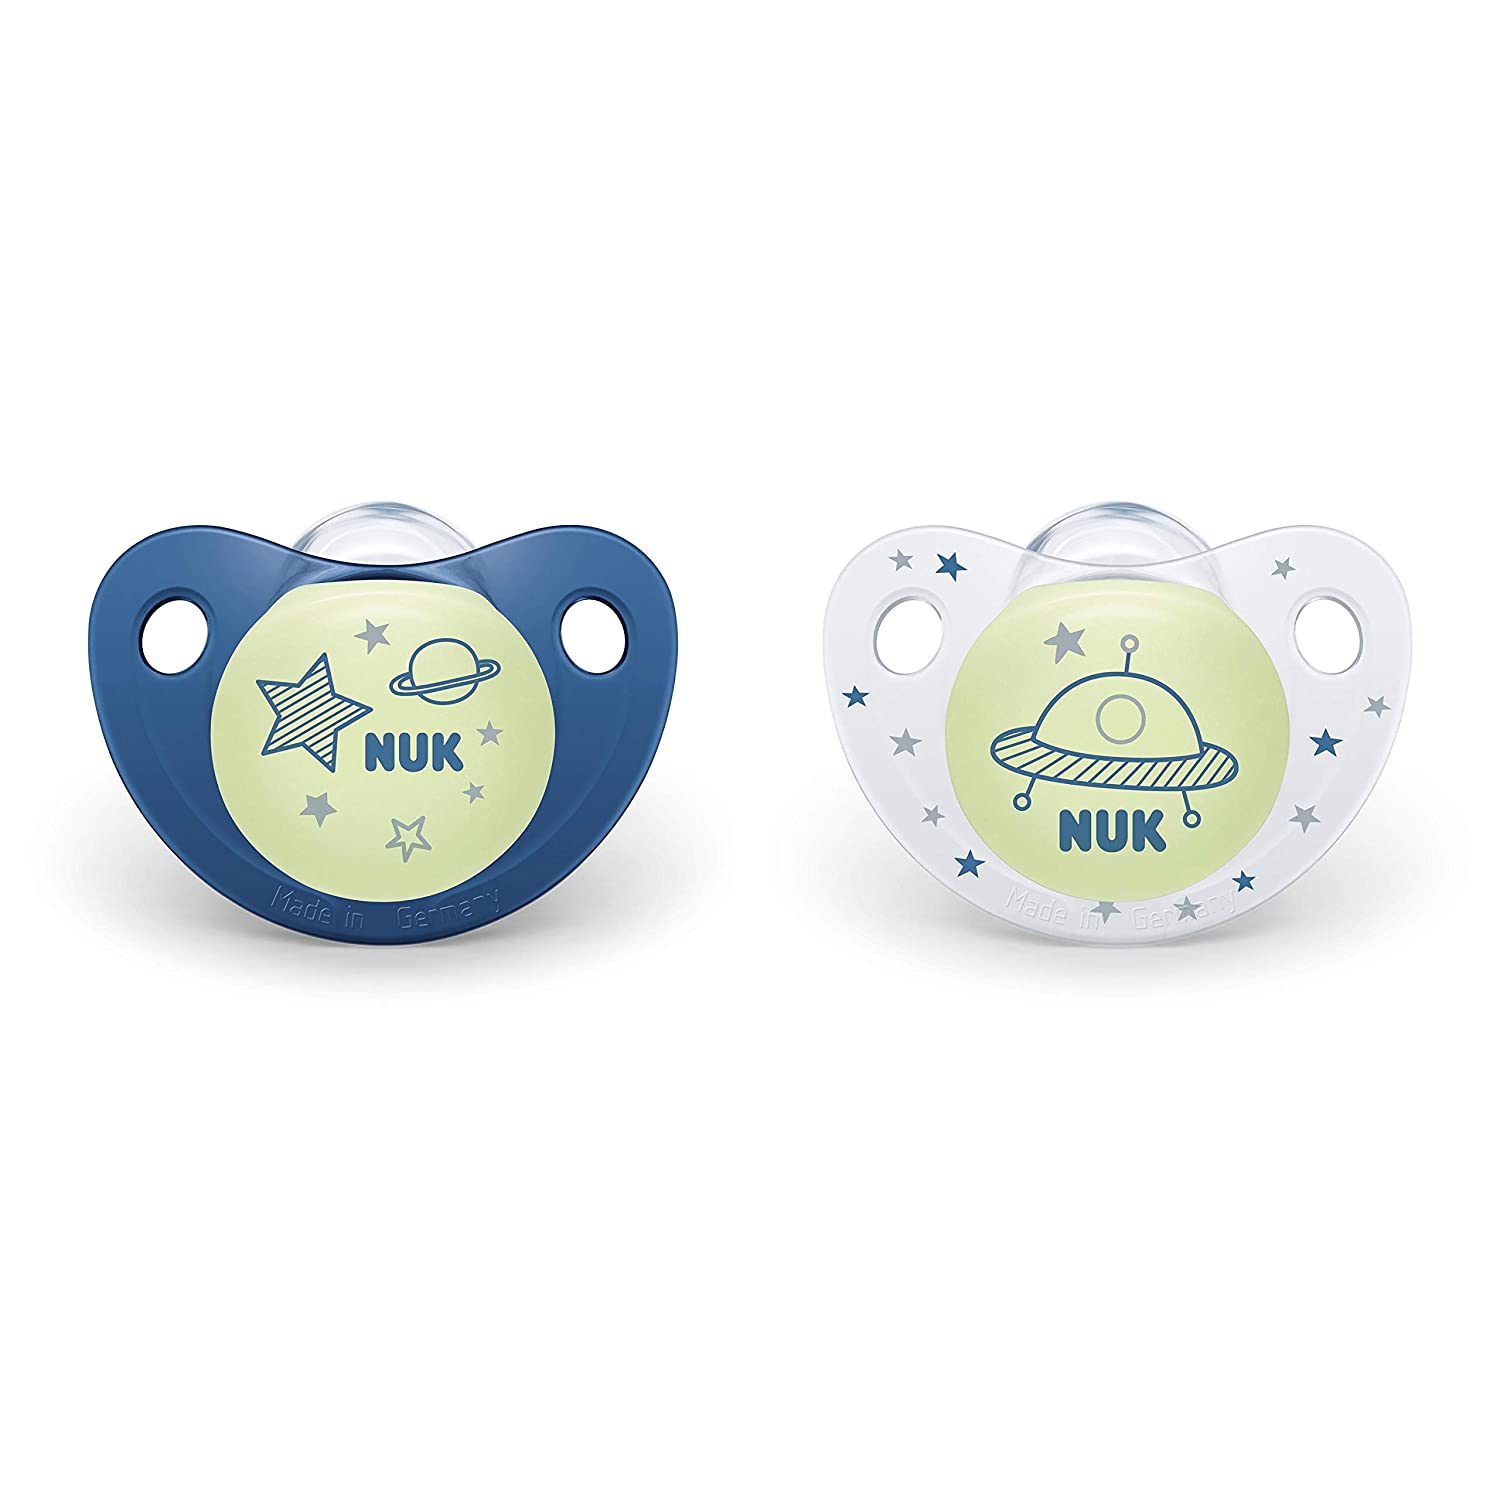 NUK Cute-as-a-Button Glow-in-The-Dark Orthodontic Pacifiers, 6-18 Months, 2 Pack, Baby Boys